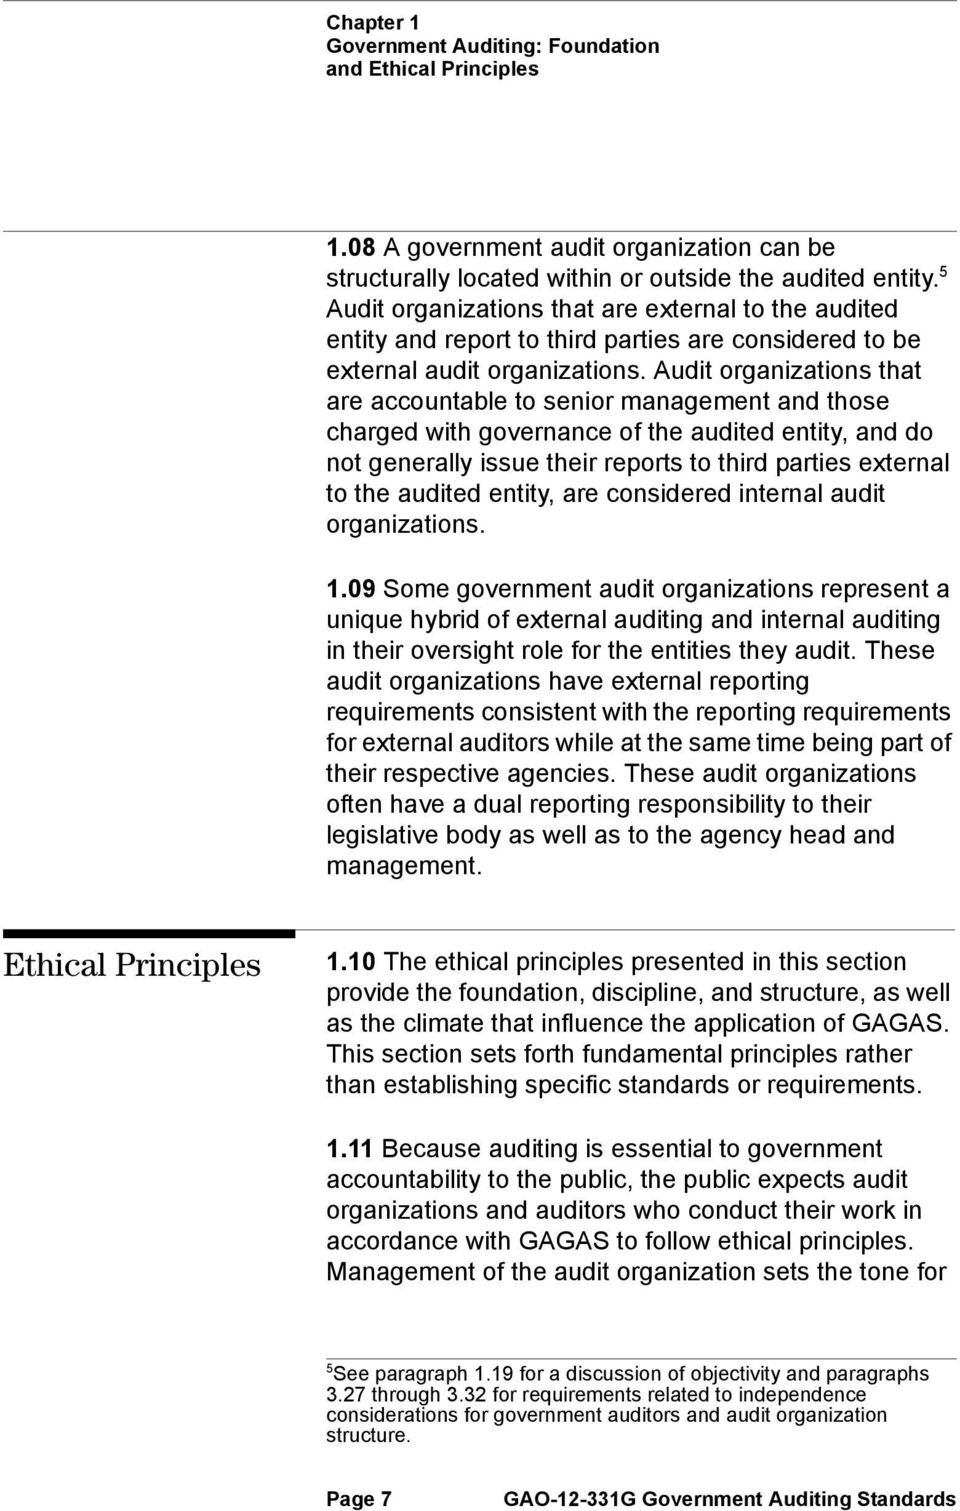 Audit organizations that are accountable to senior management and those charged with governance of the audited entity, and do not generally issue their reports to third parties external to the